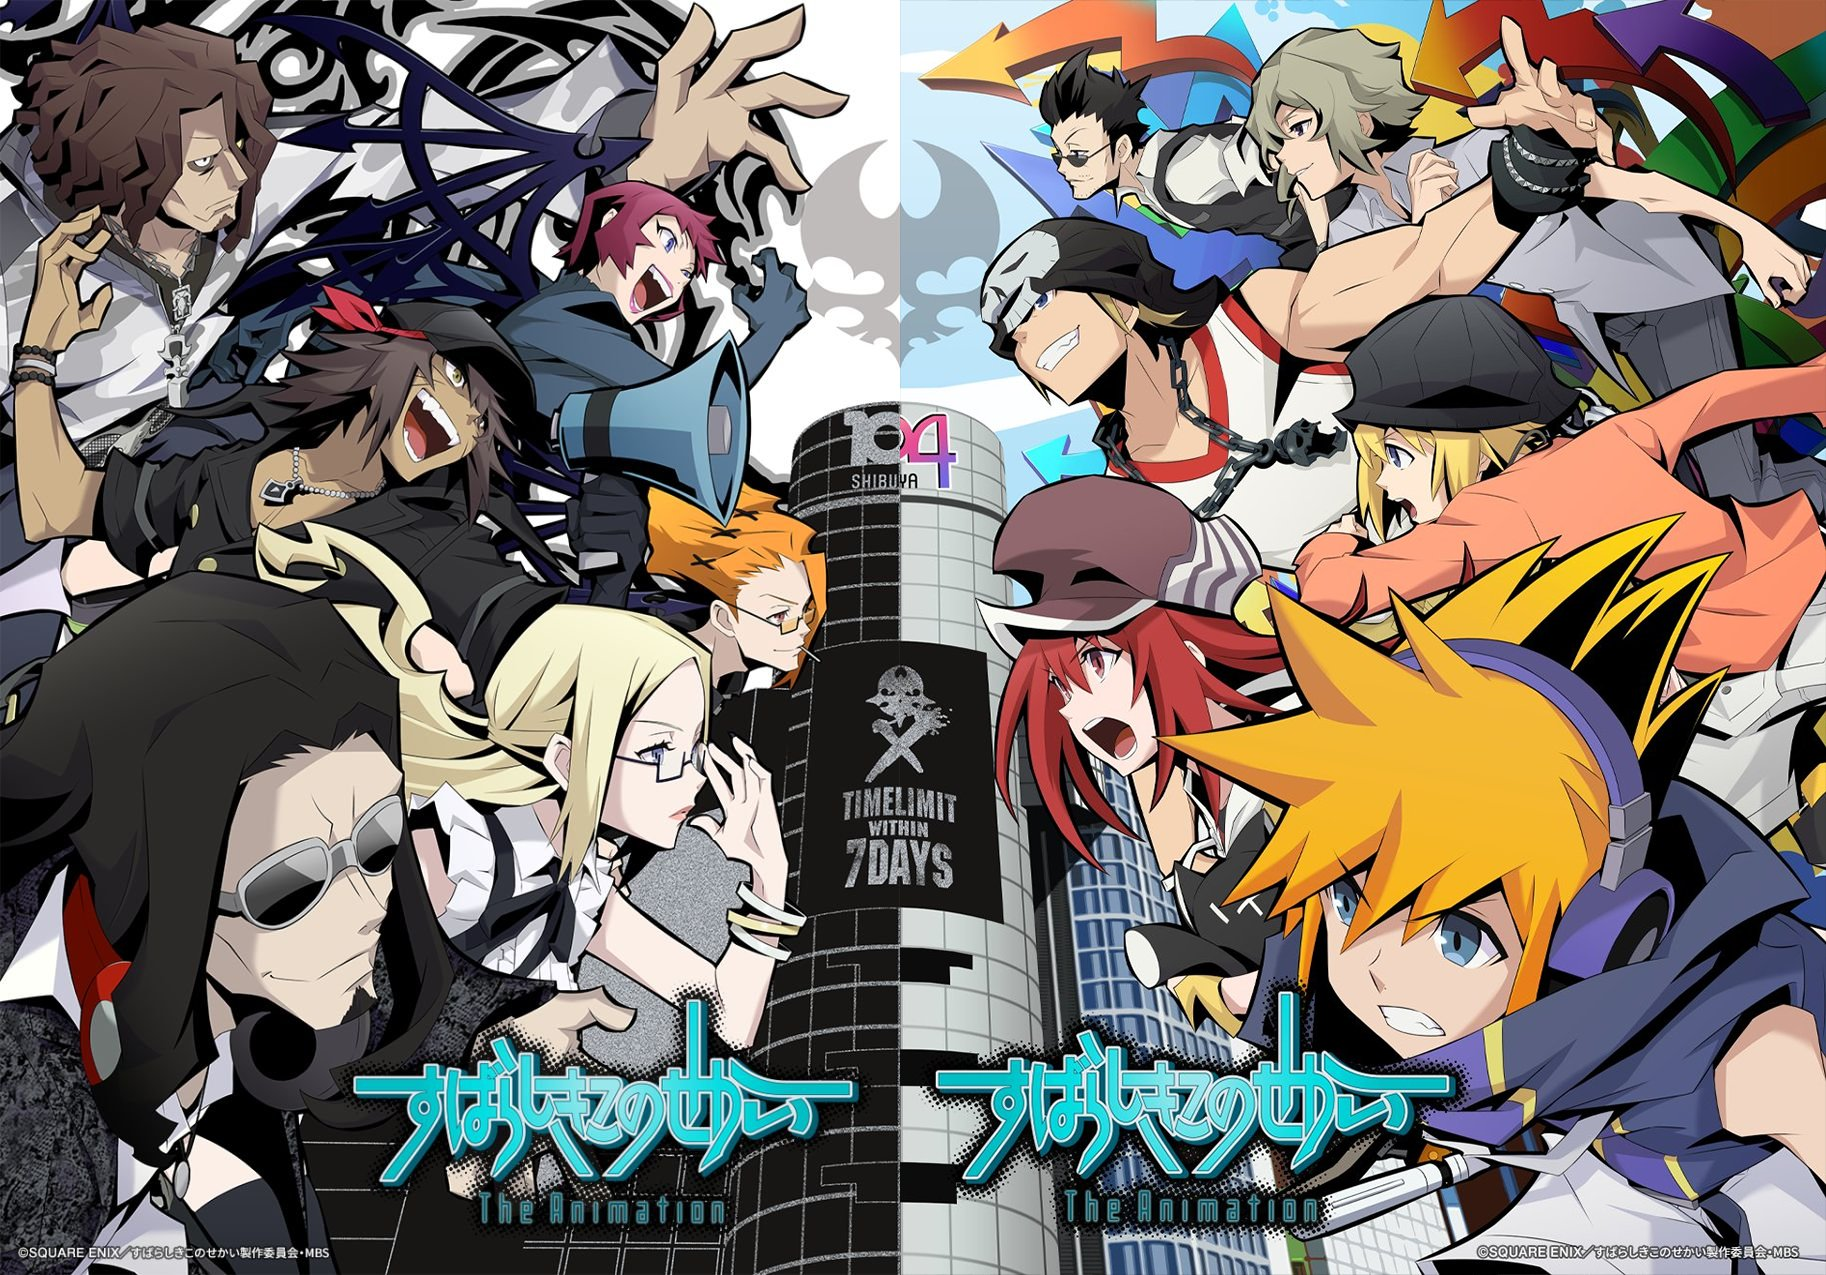 The World Ends With You The Animation Coming in April